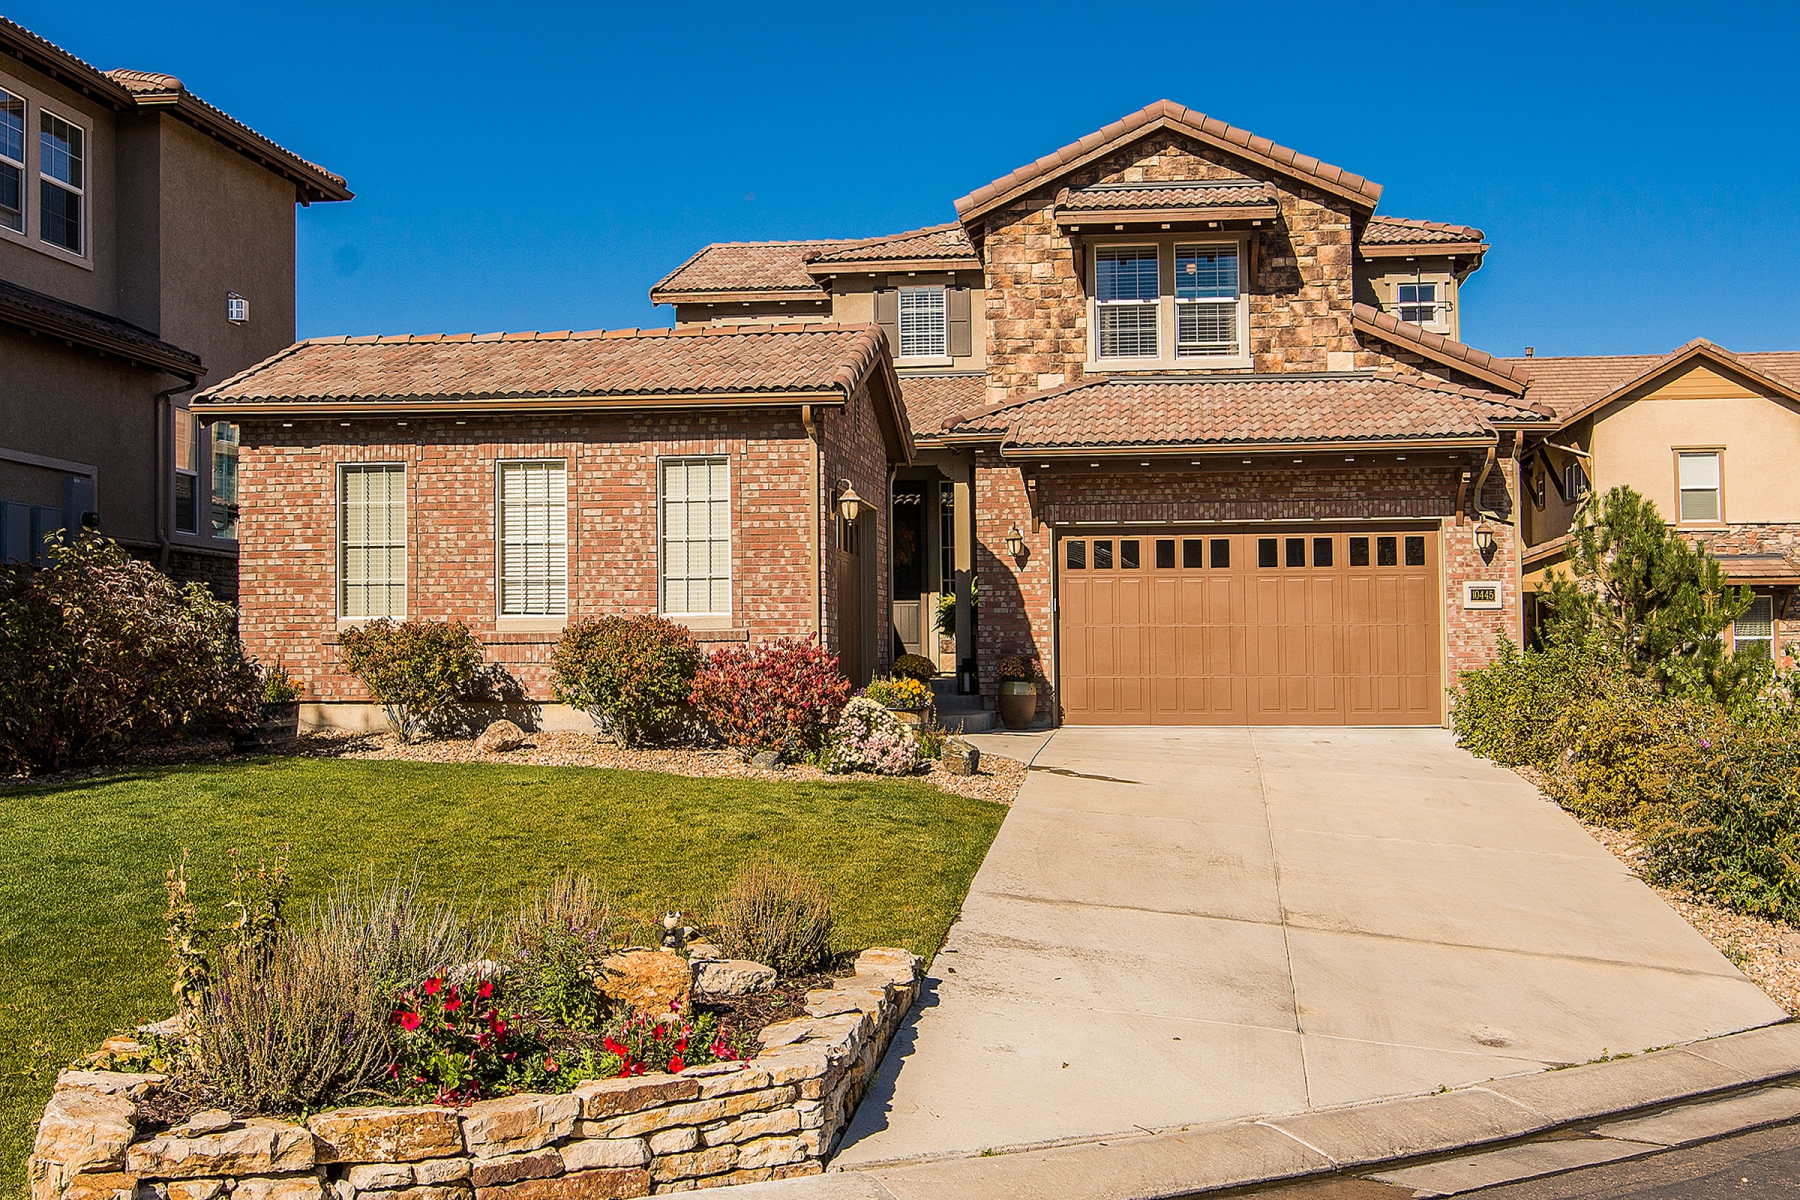 Single Family Home for Sale at Great home with fabulous curb appeal 10445 Willowwisp Way Highlands Ranch, Colorado 80126 United States